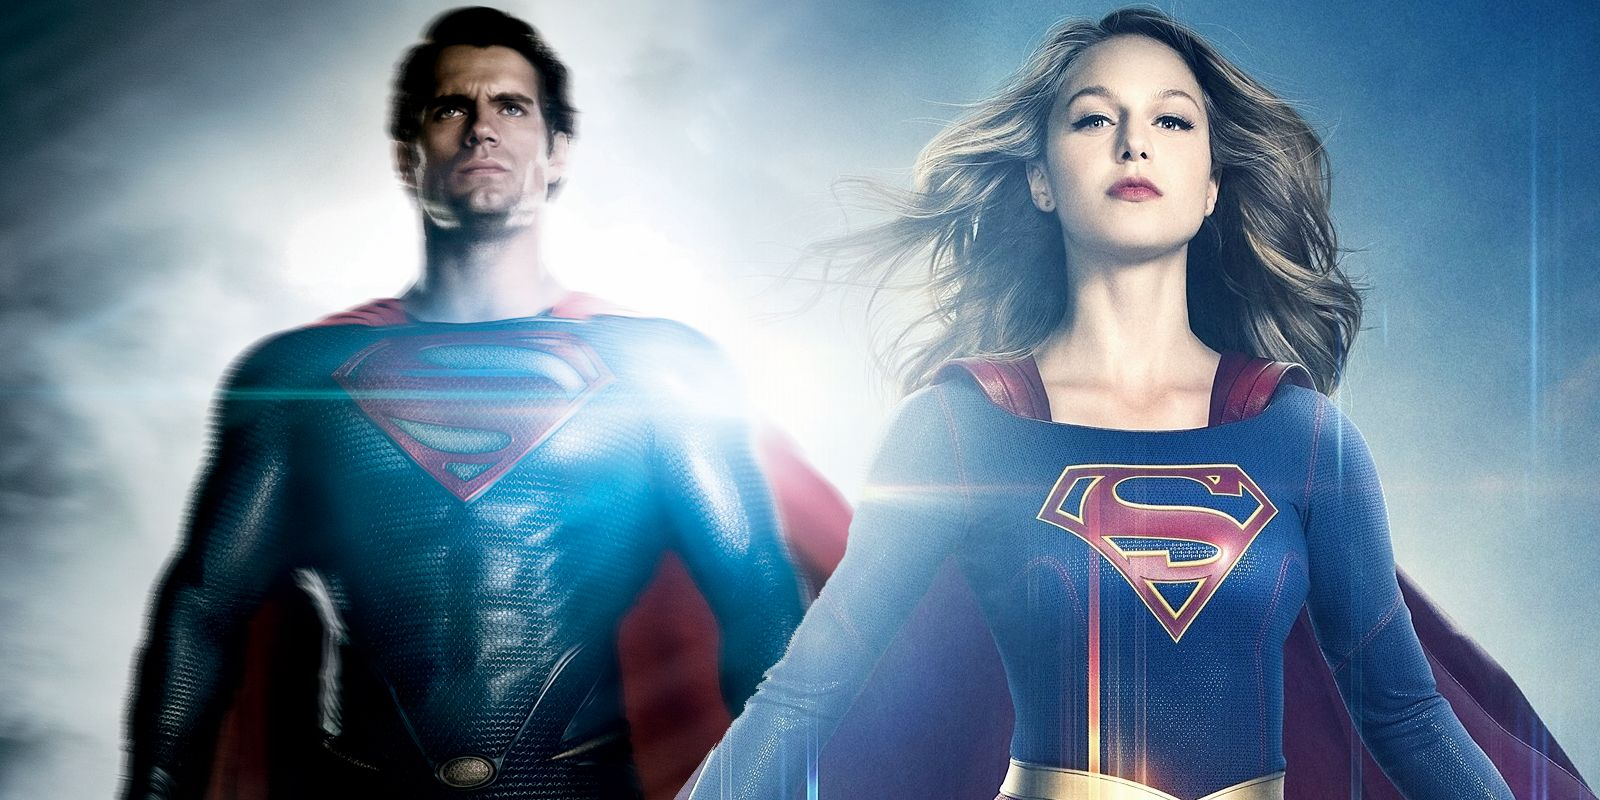 Rumor: Man of Steel 2 Will Introduce Supergirl to the DCEU